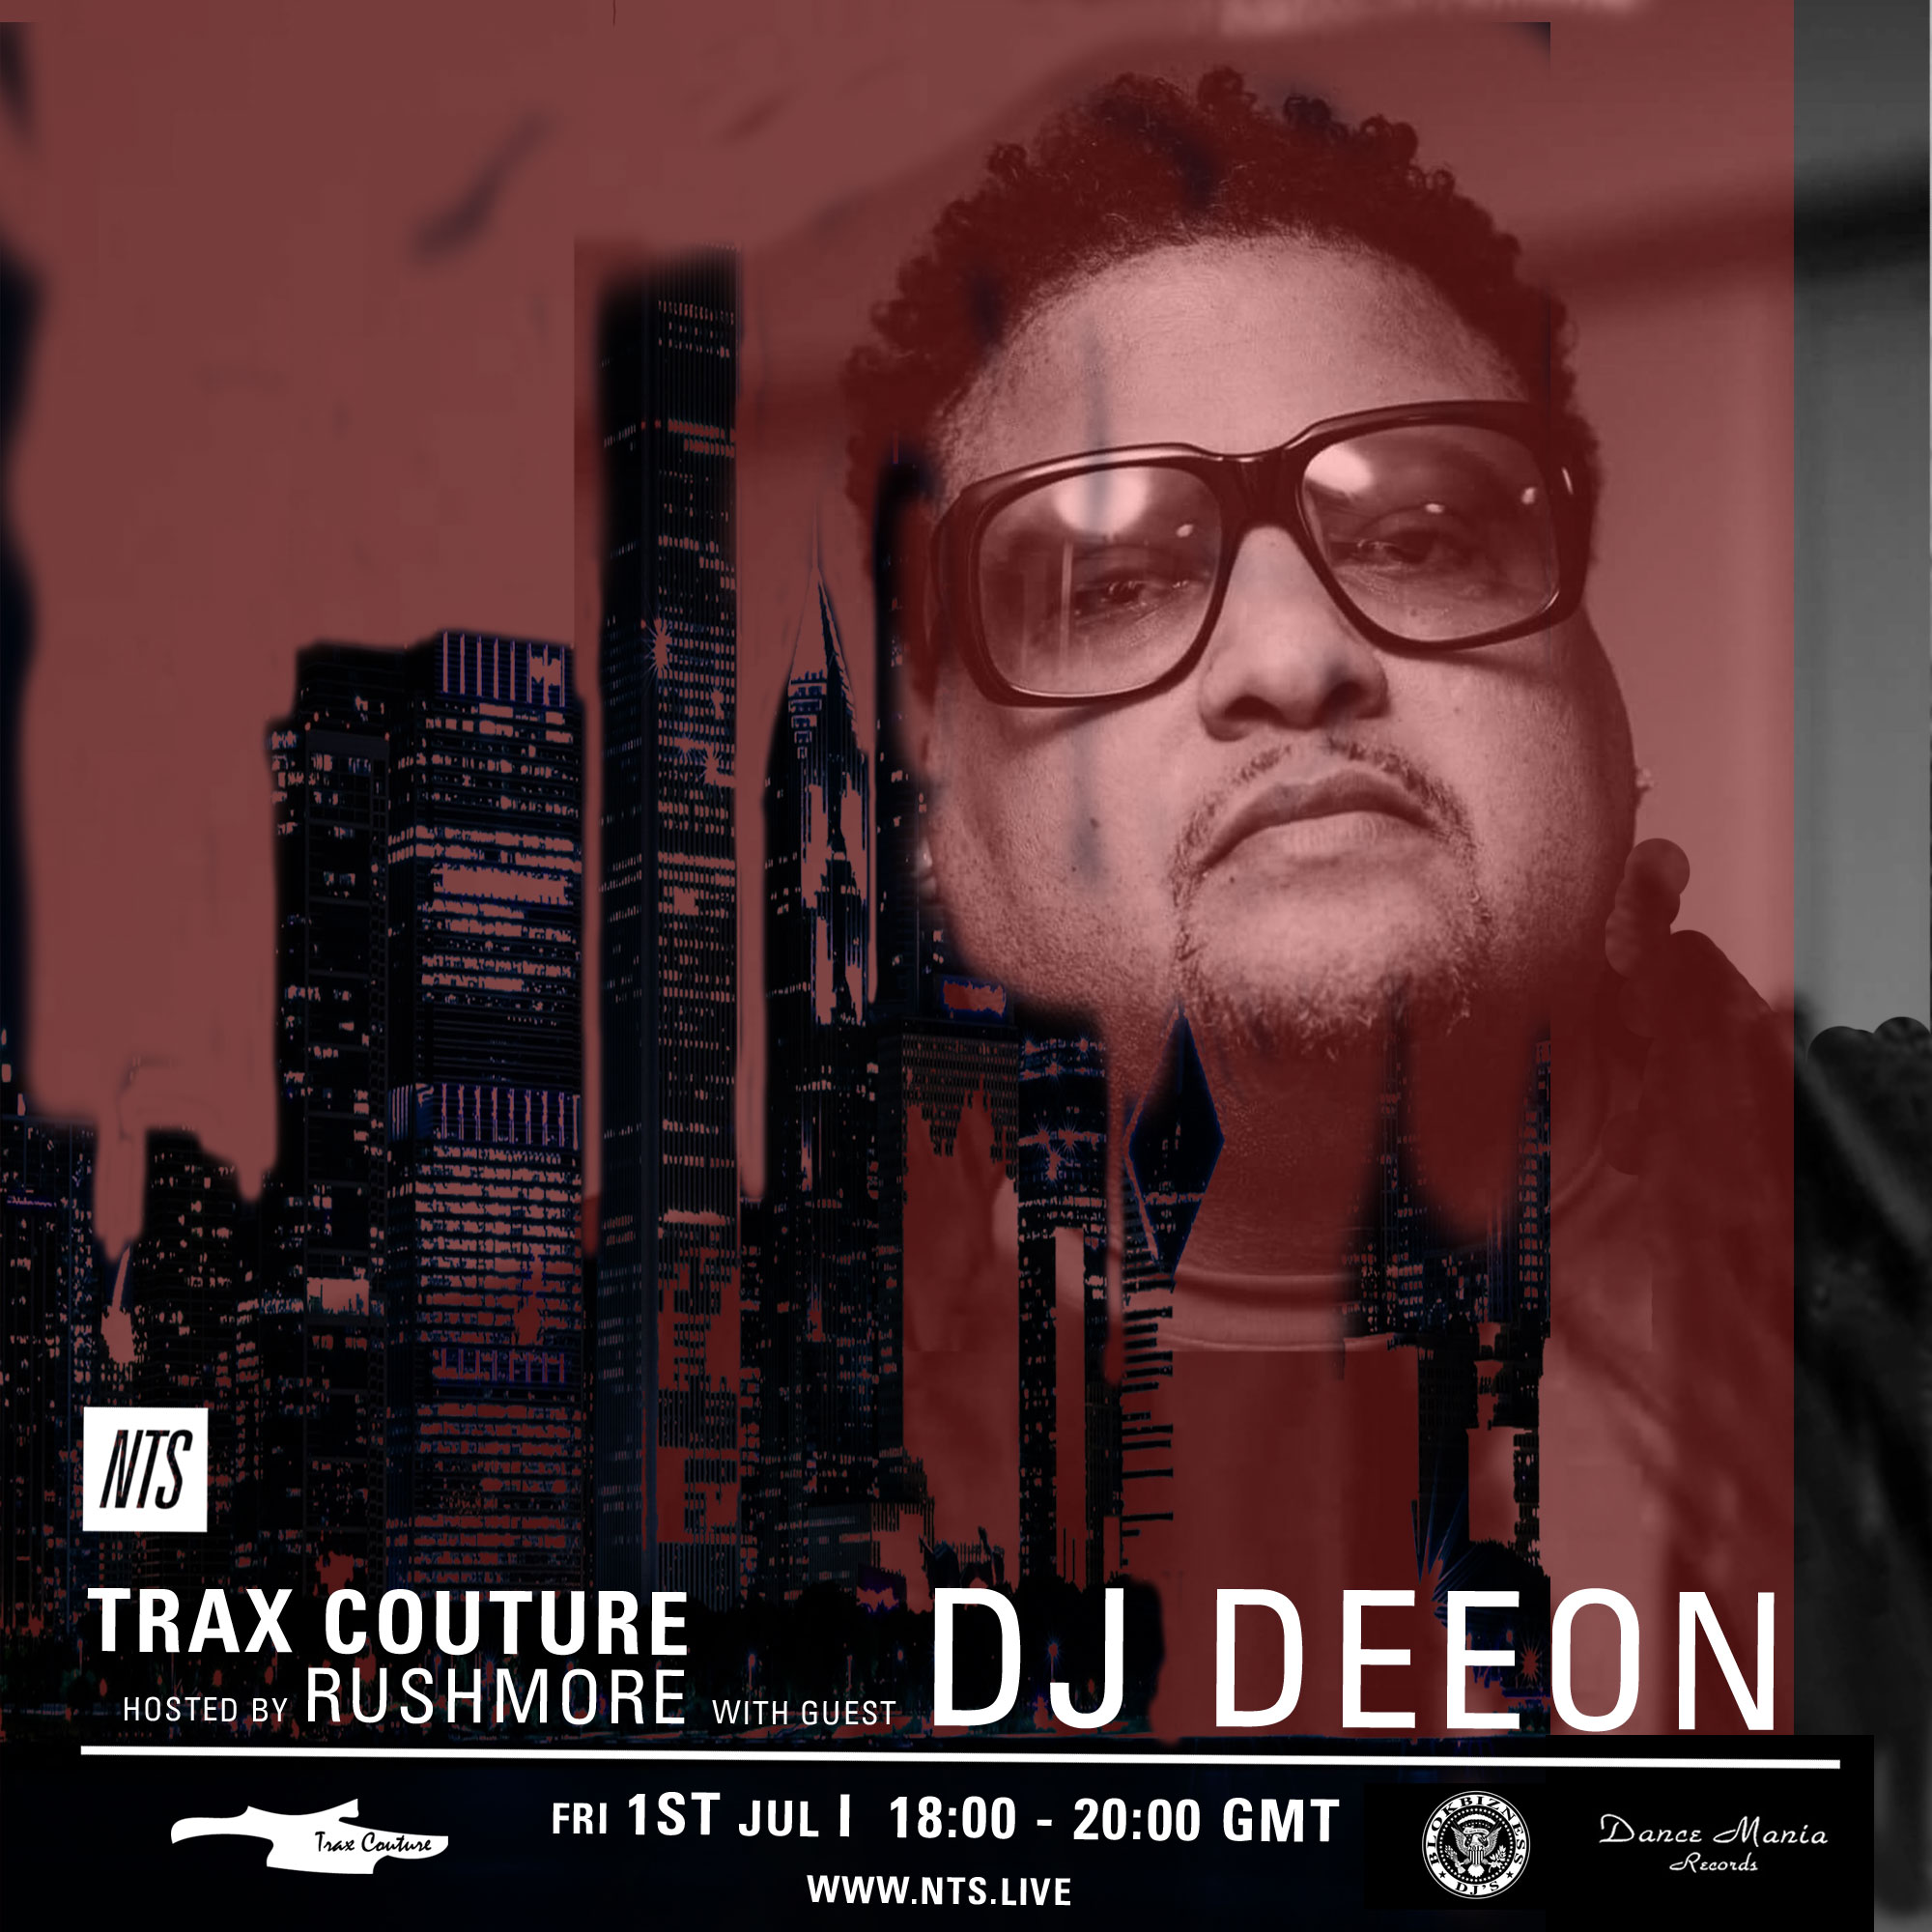 Trax Couture on NTS w/ DJ DEEON - Trax Couture